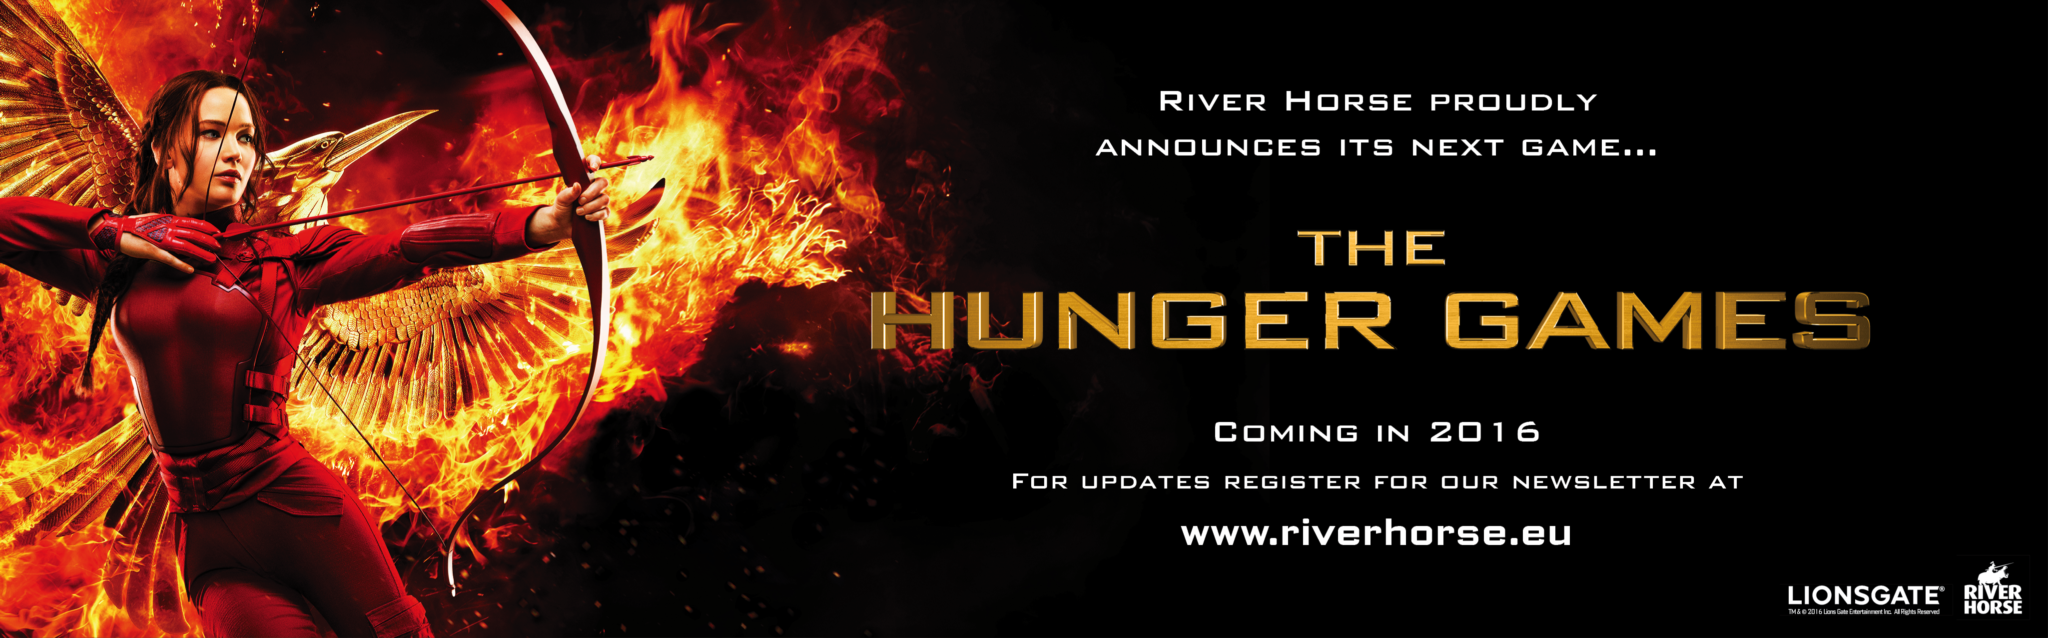 Hunger Games Press Release_v3